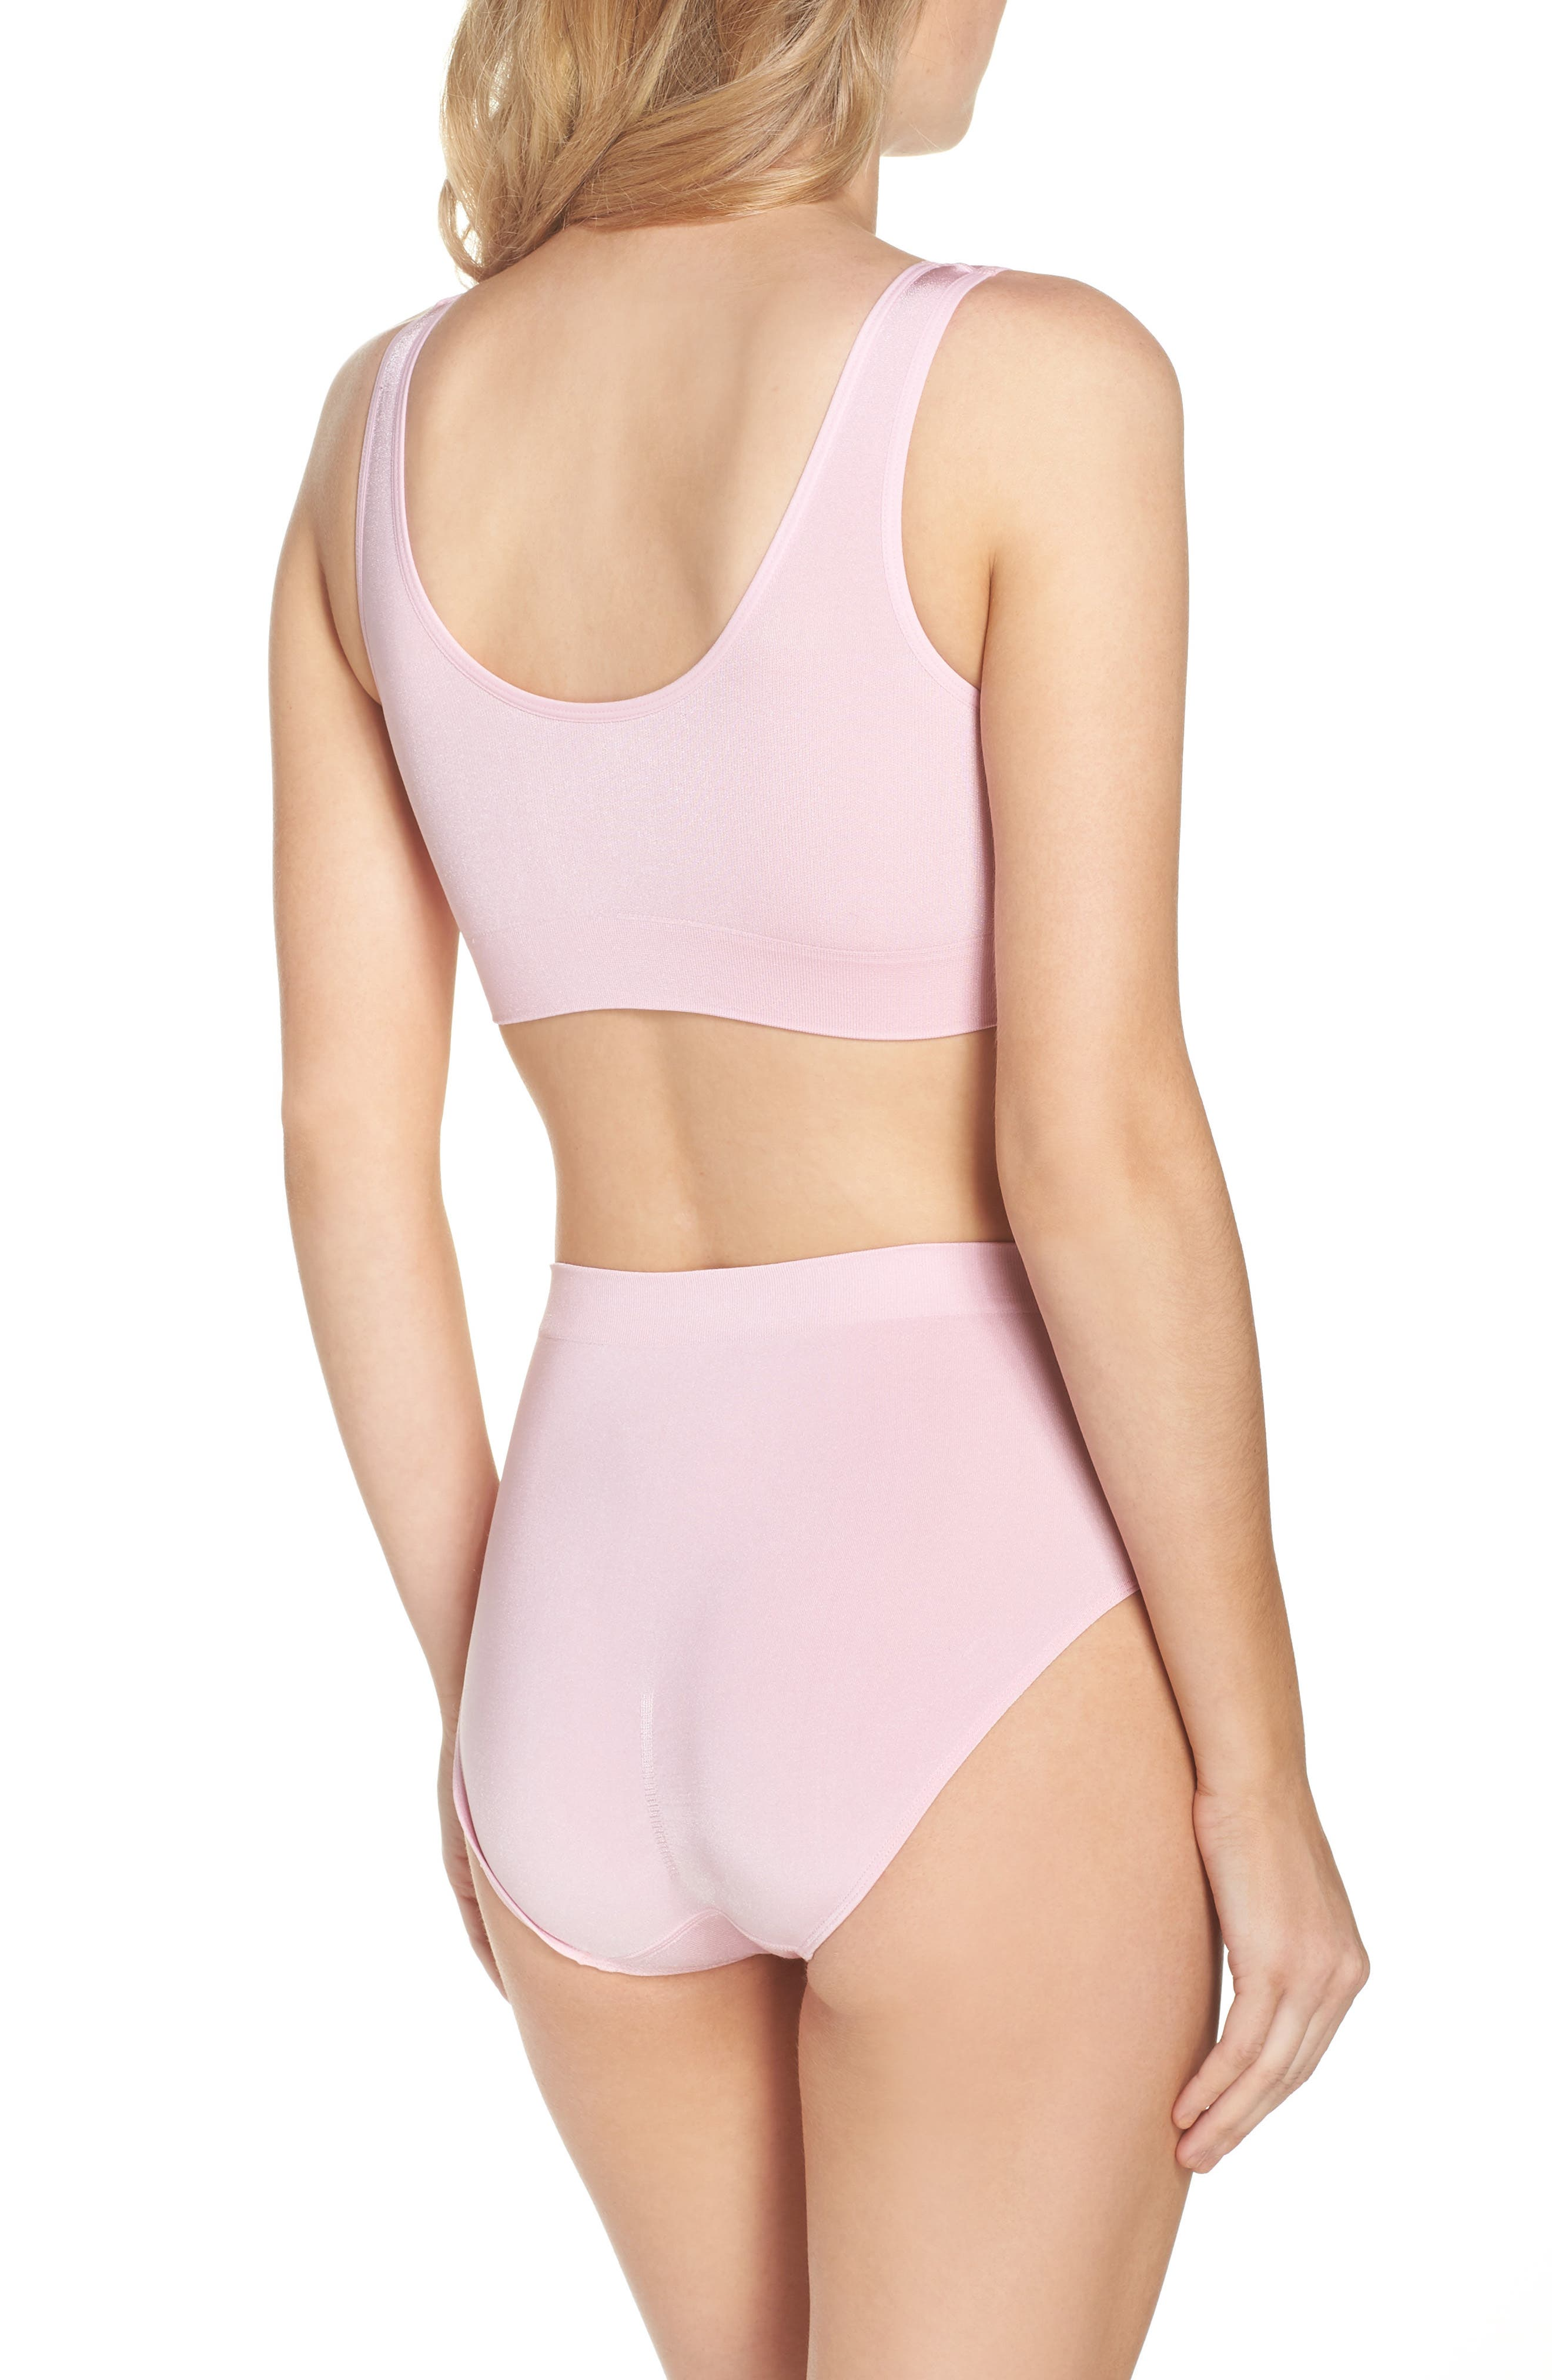 B Smooth Briefs,                             Alternate thumbnail 5, color,                             Cameo Pink